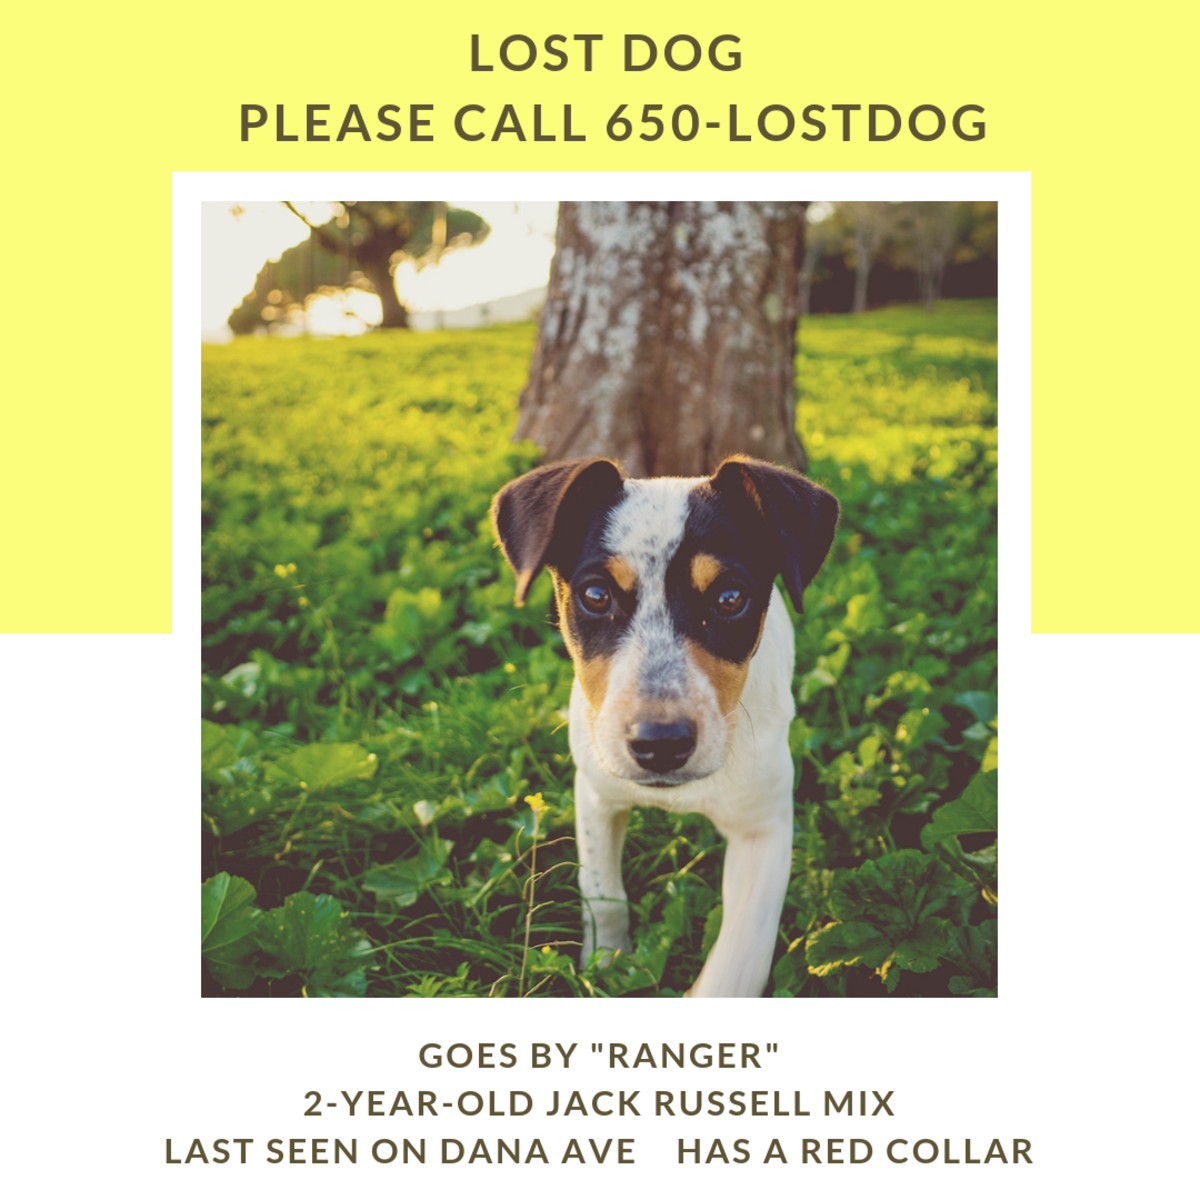 How to Find a Lost or Missing Pet Dog or Cat